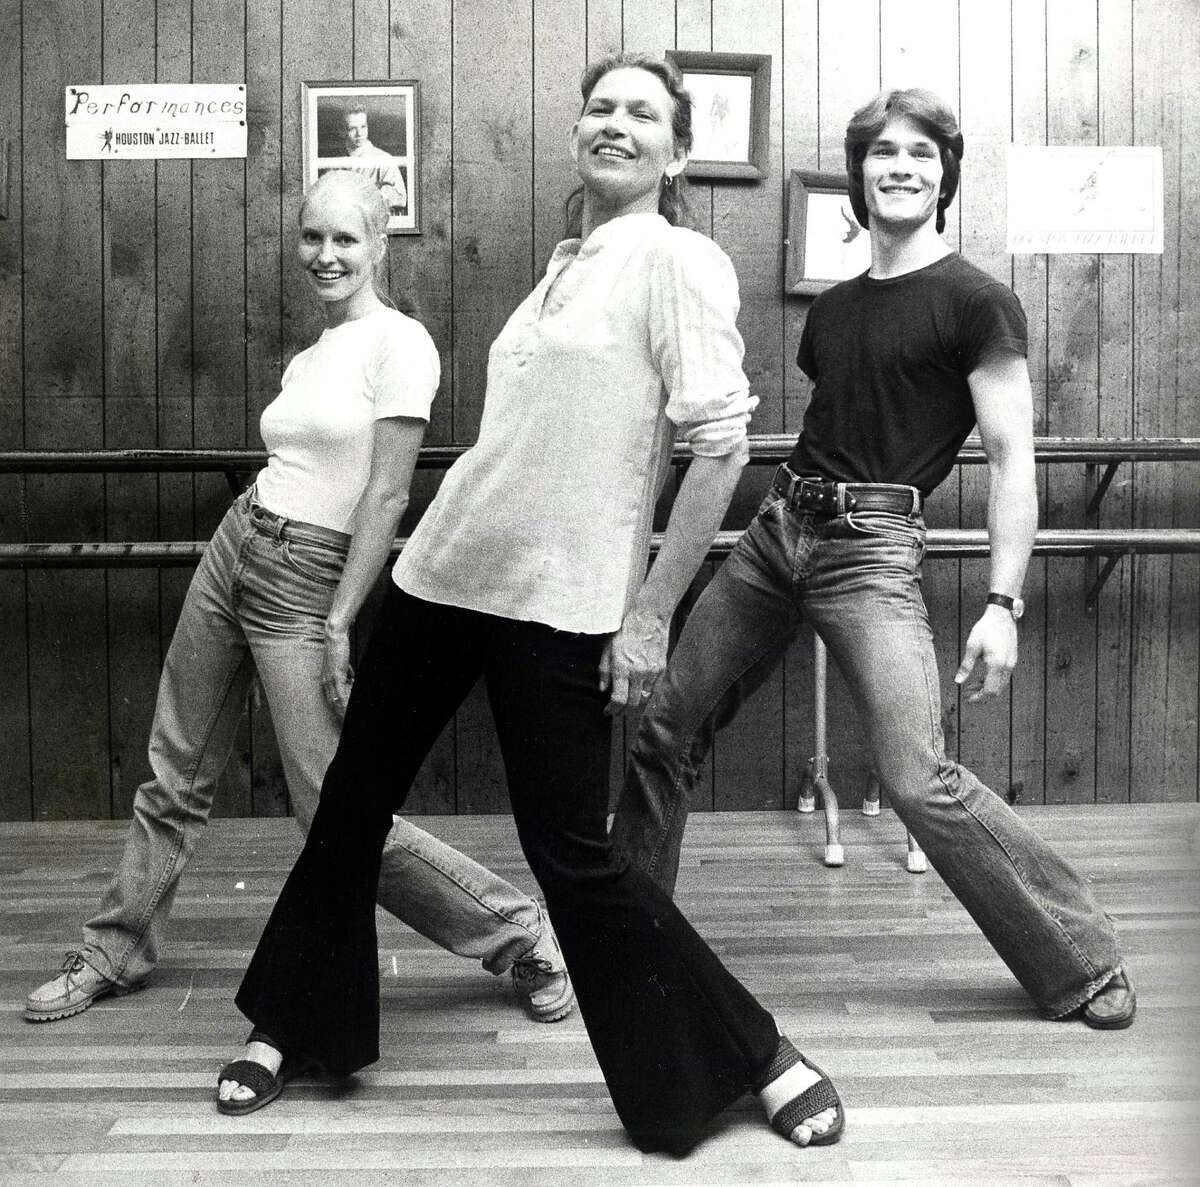 (R-L) Actor Patrick Swayze, his mother Patsy Swayze and his wife Lisa Haapaniemi (aka Niemi) dance at Patsy Swayze's dance studio in Houston in 1978.